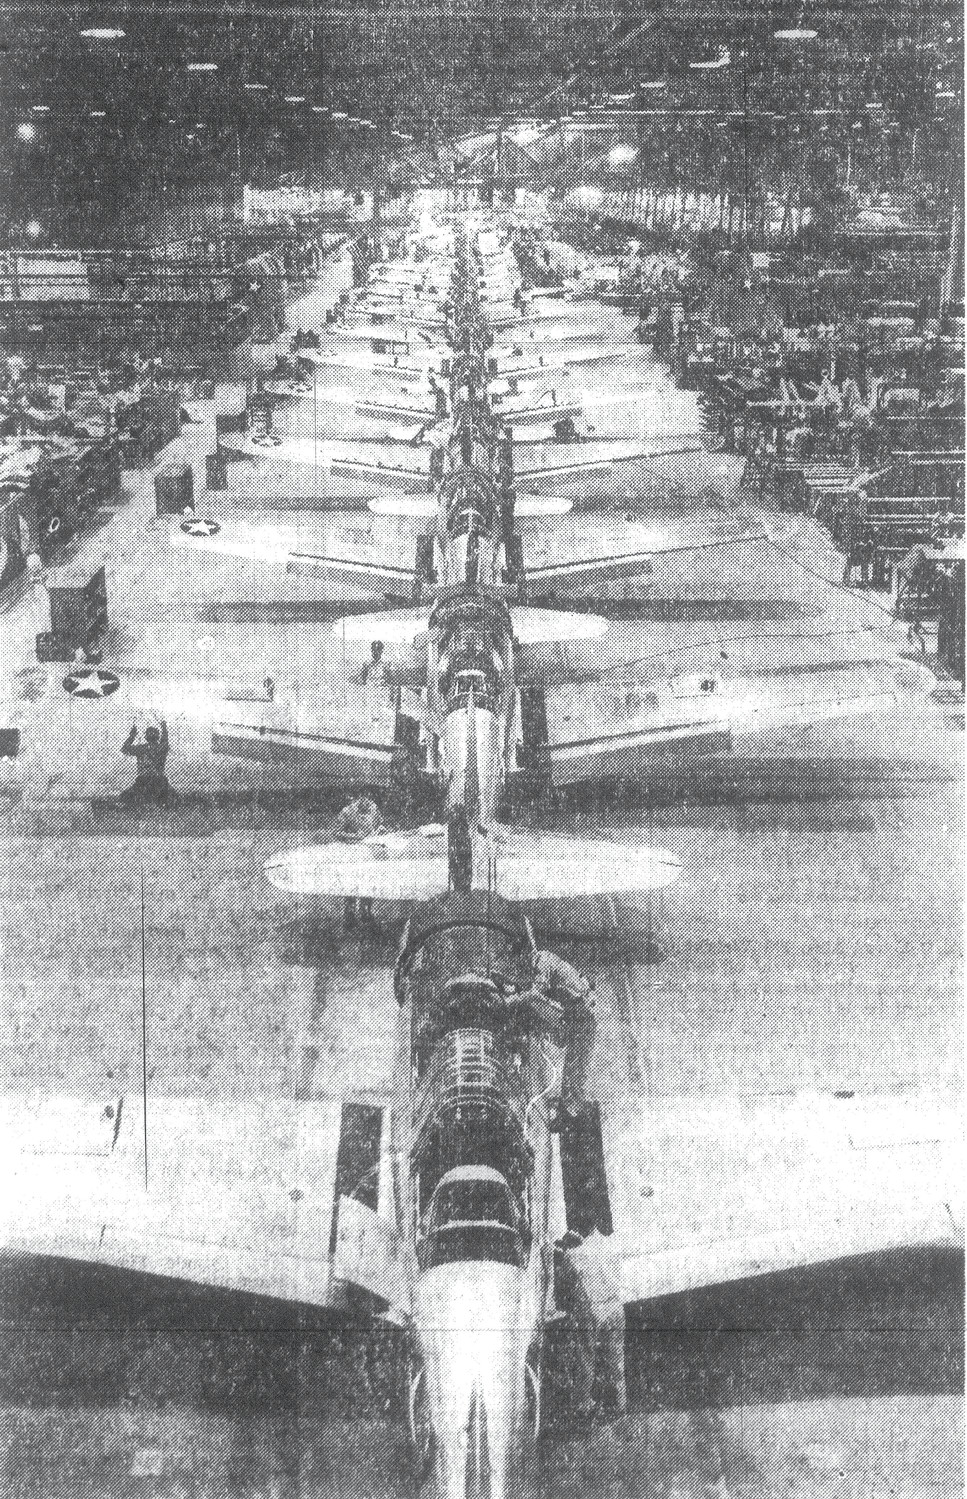 1943 — The production line is seen at the Consolidated Vultee aircraft plant at Downey, California, where basic trainer planes like the ones used at Shaw Field are made. Sumter citizens helped to buy several of these planes by purchasing War Bonds during the Lions Club drive in August.